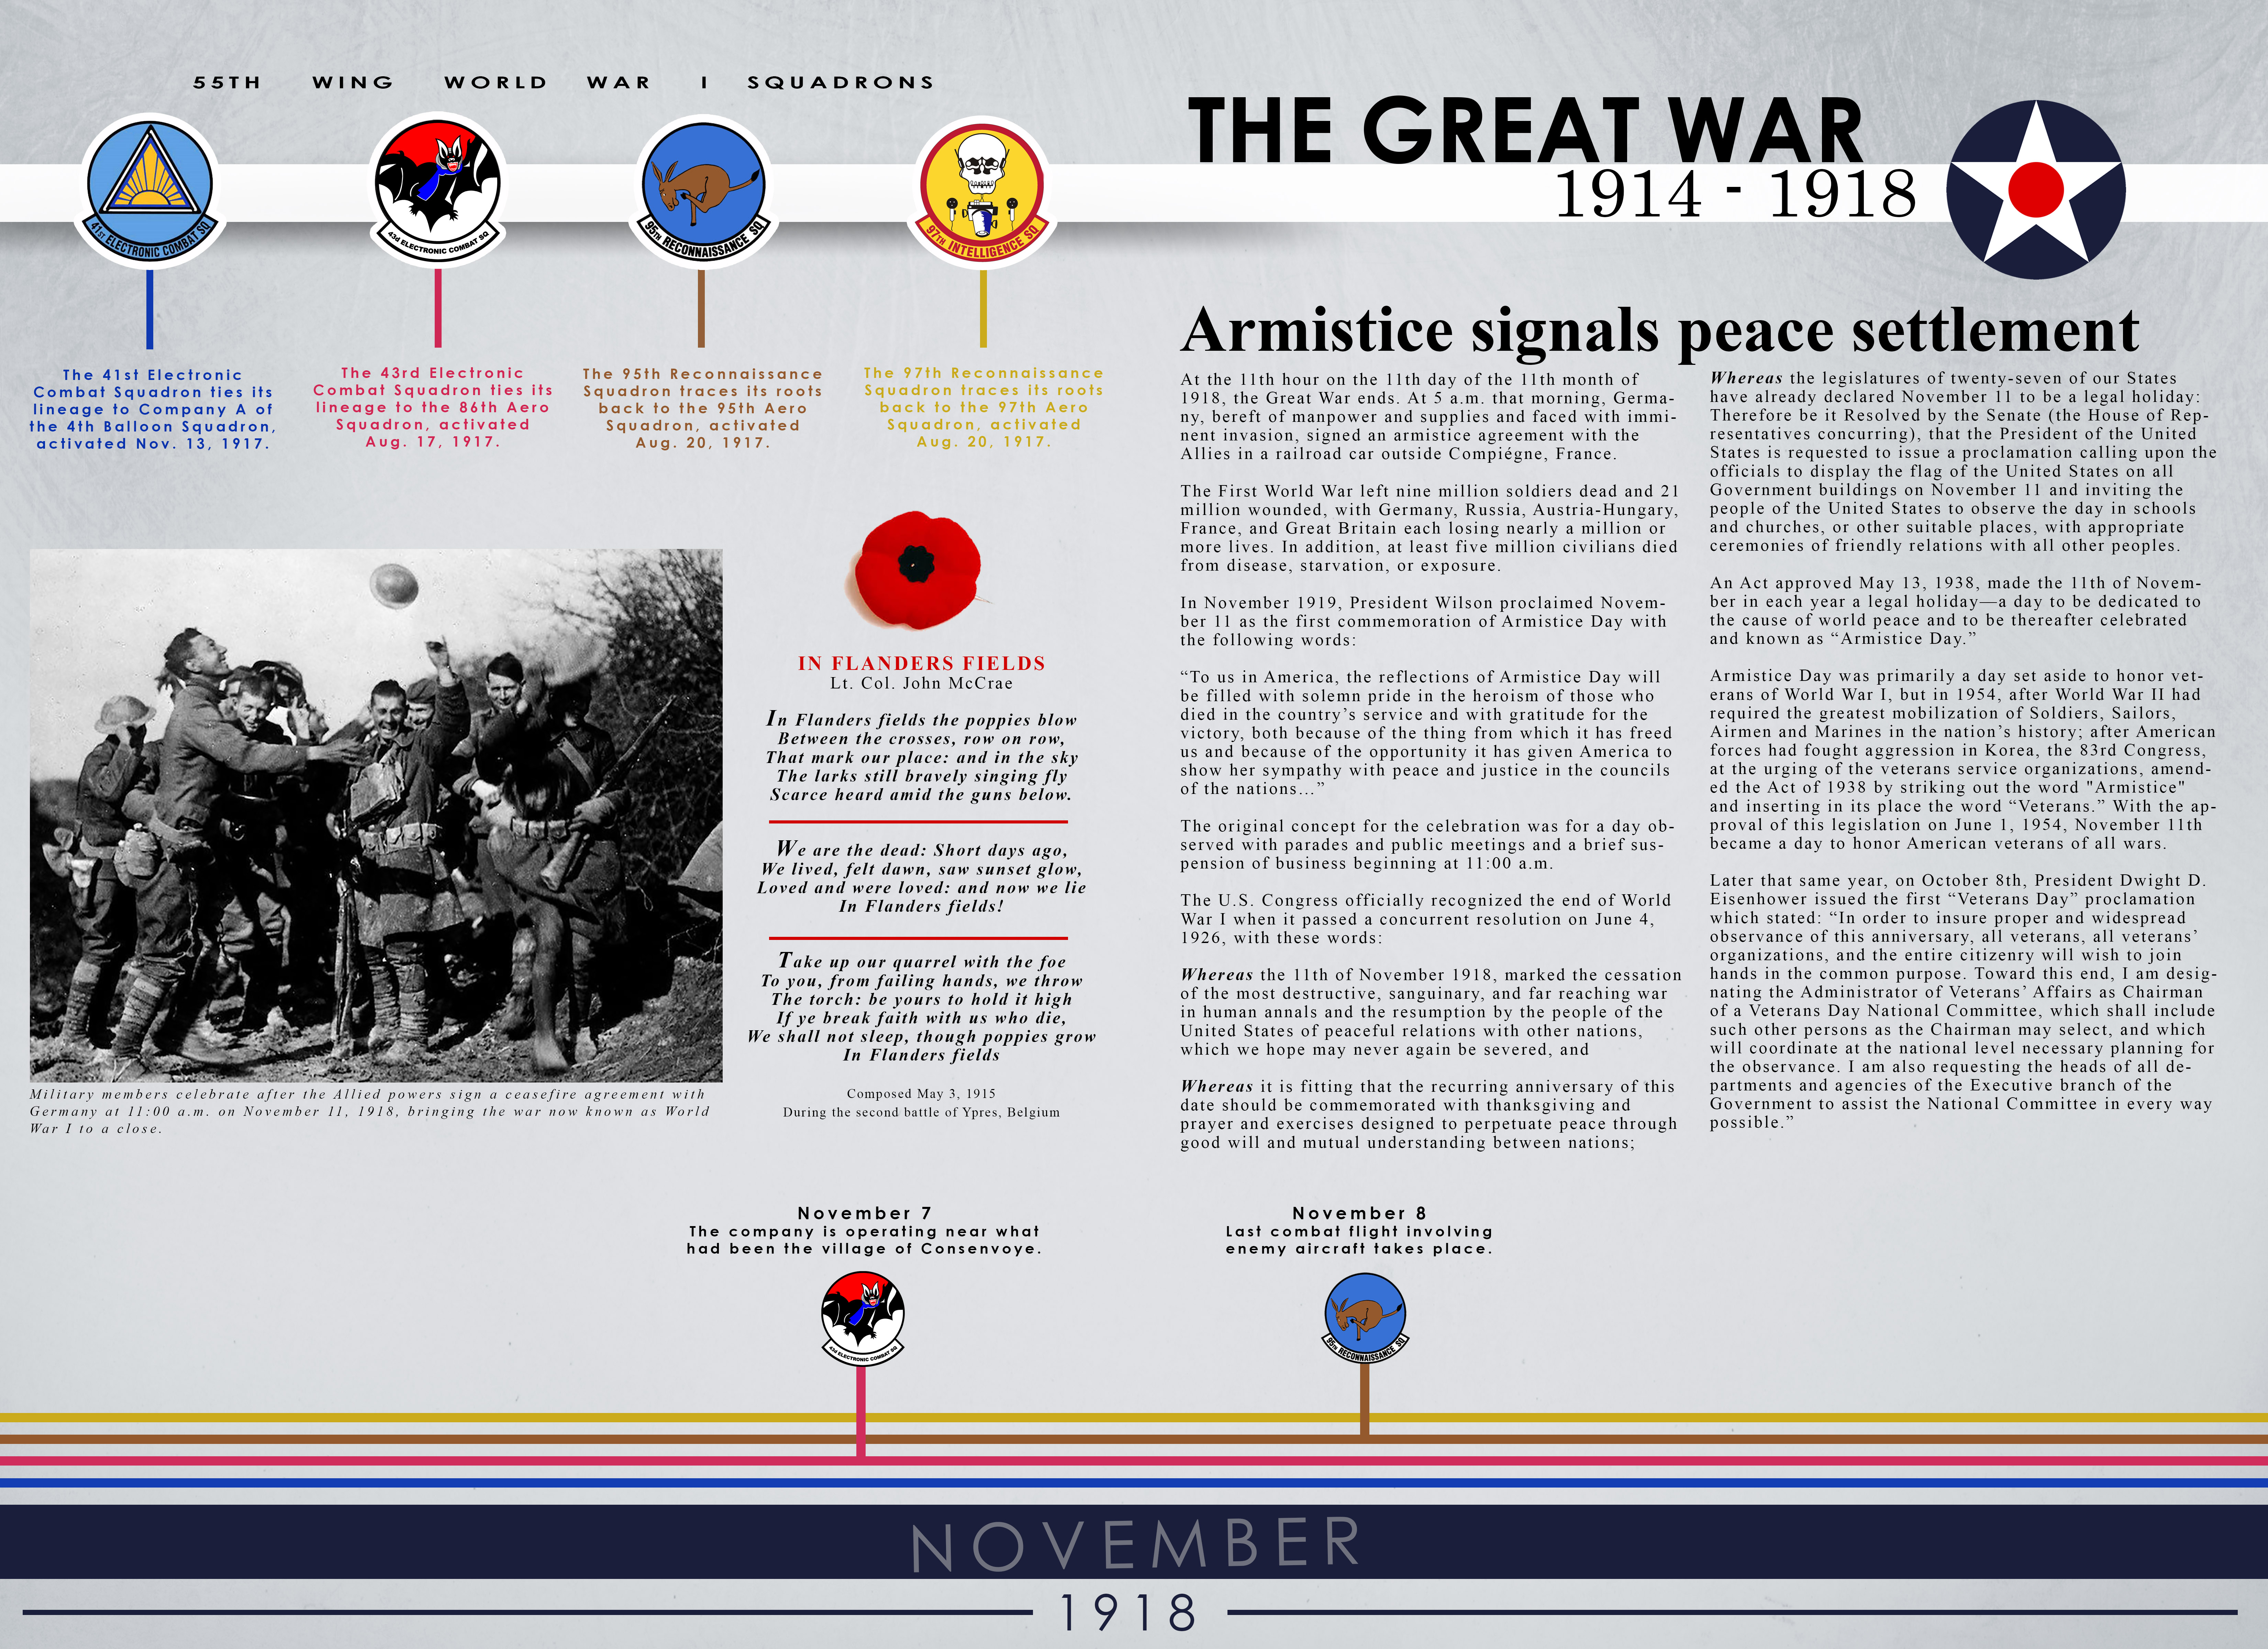 The Great War - November